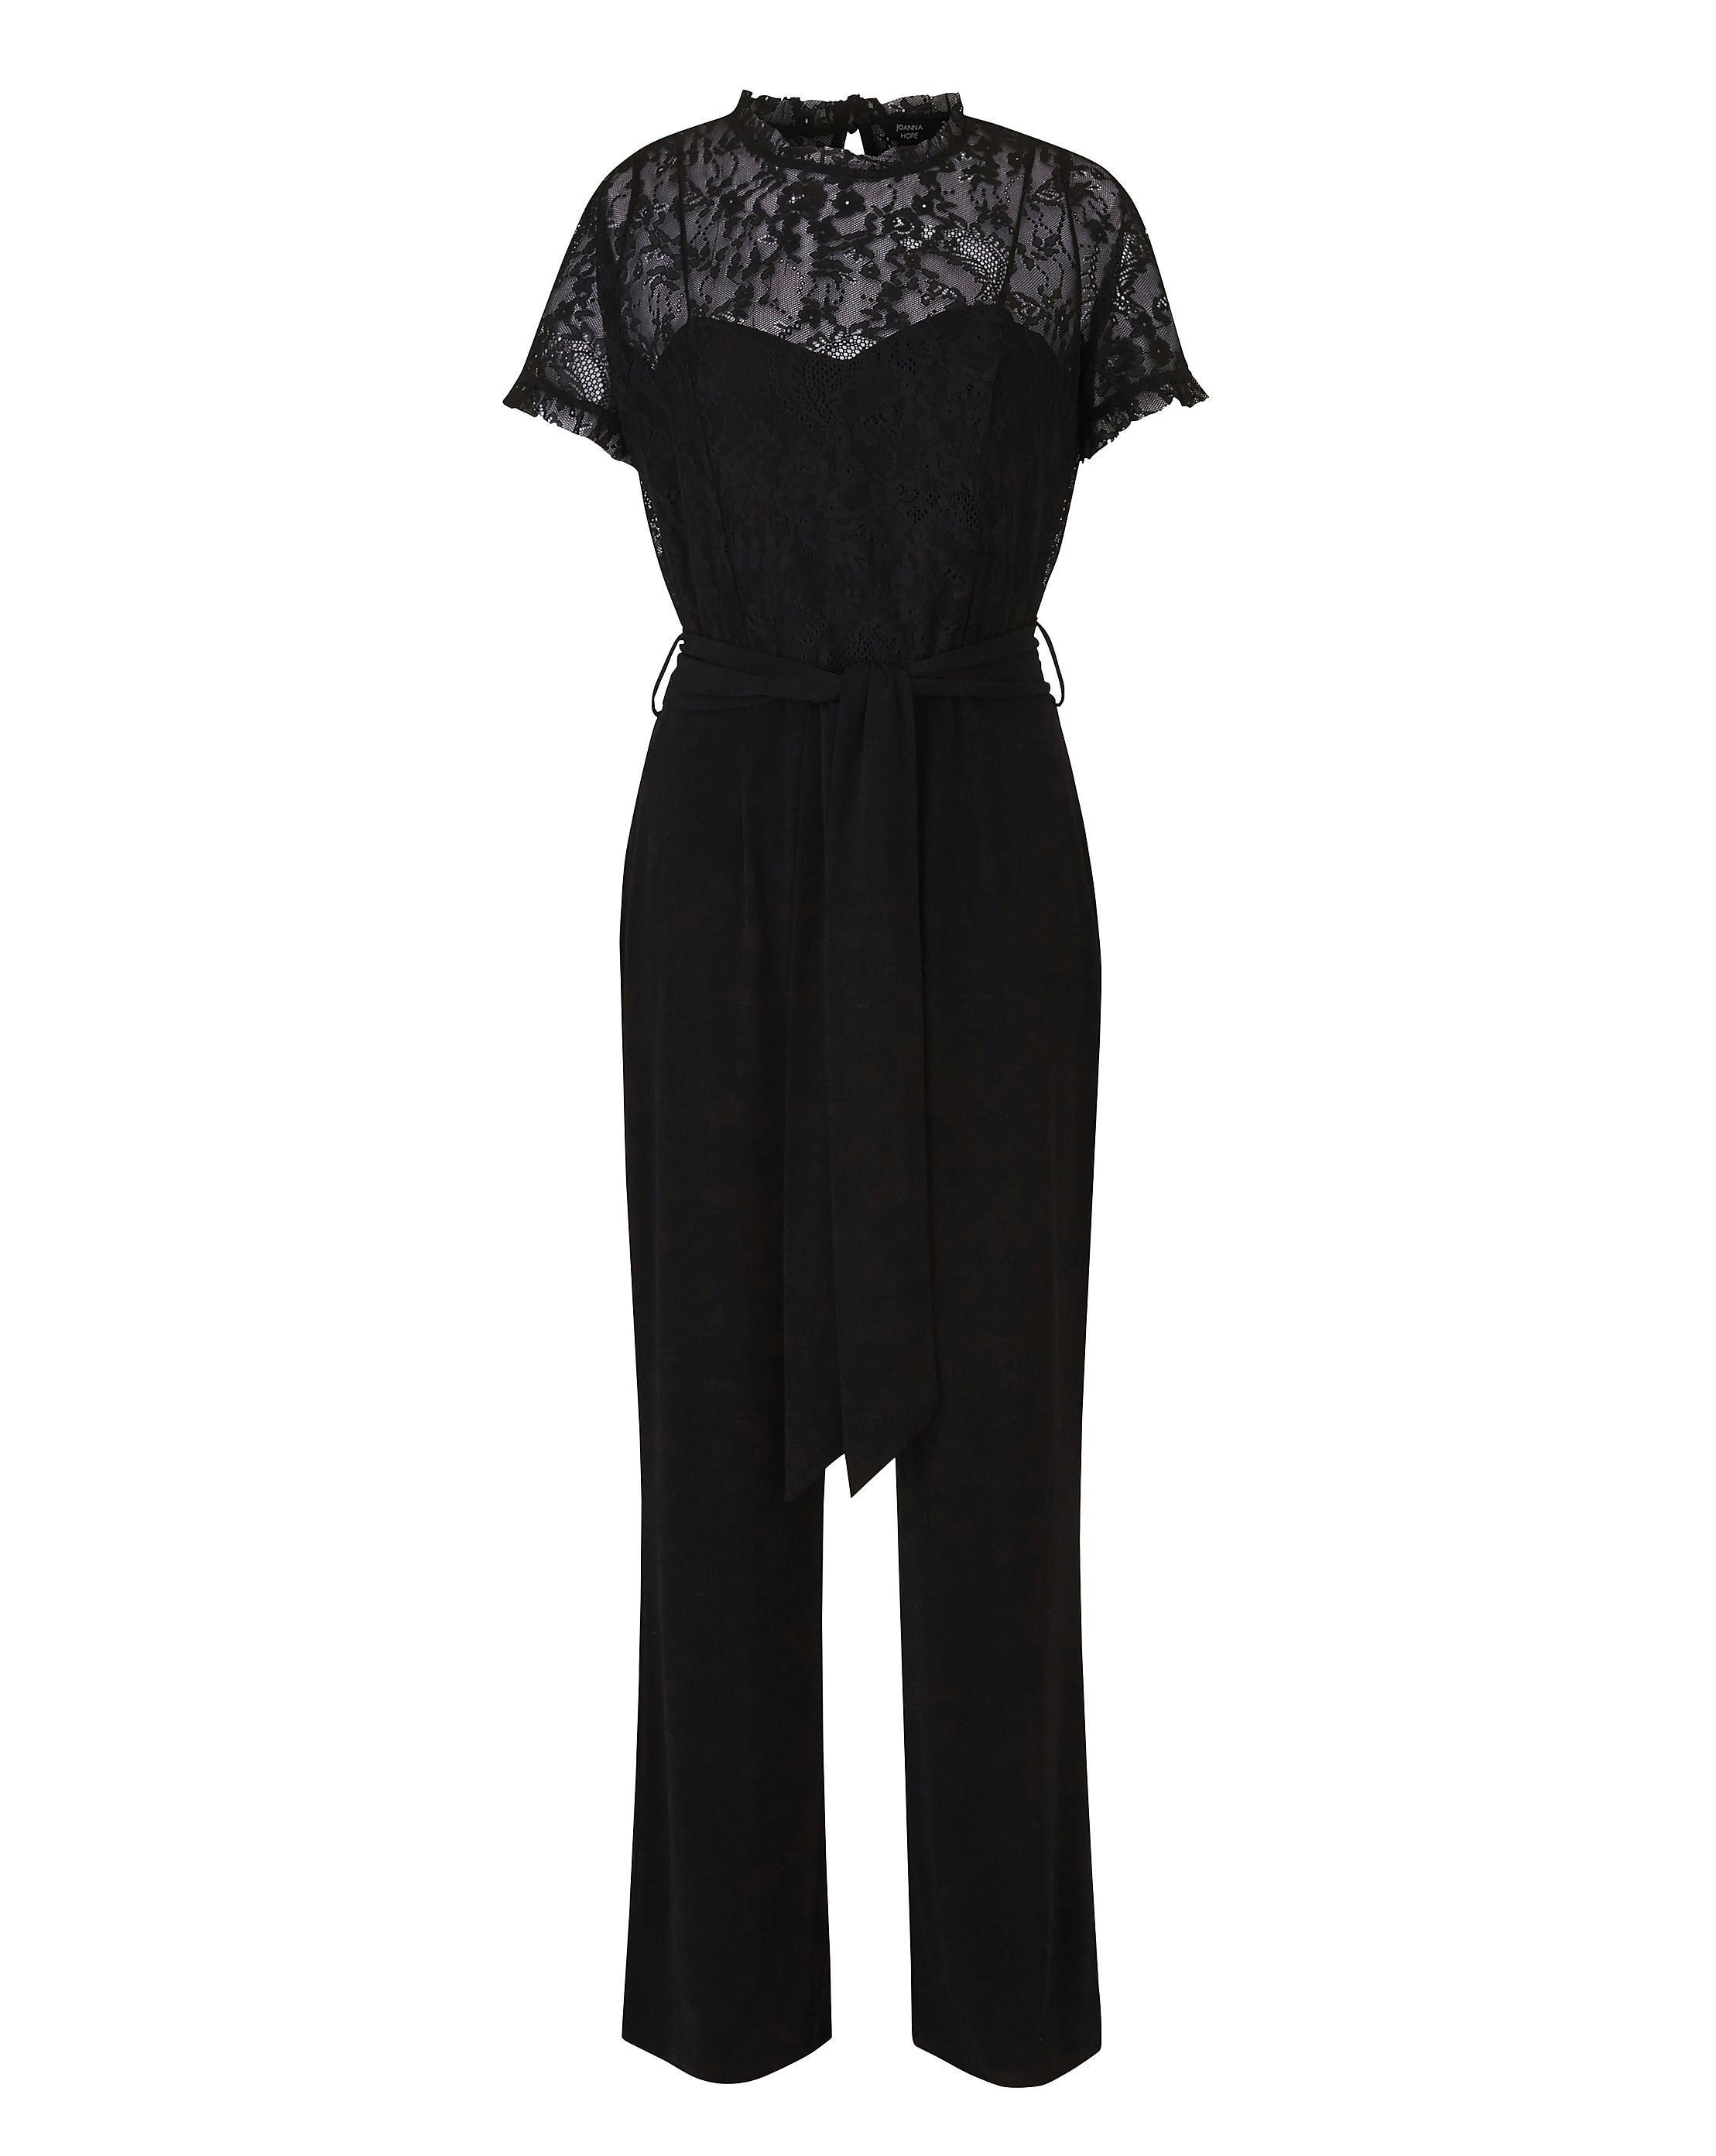 9403d10beb0 Lyst - Simply Be Joanna Hope Lace Top Jumpsuit in Black